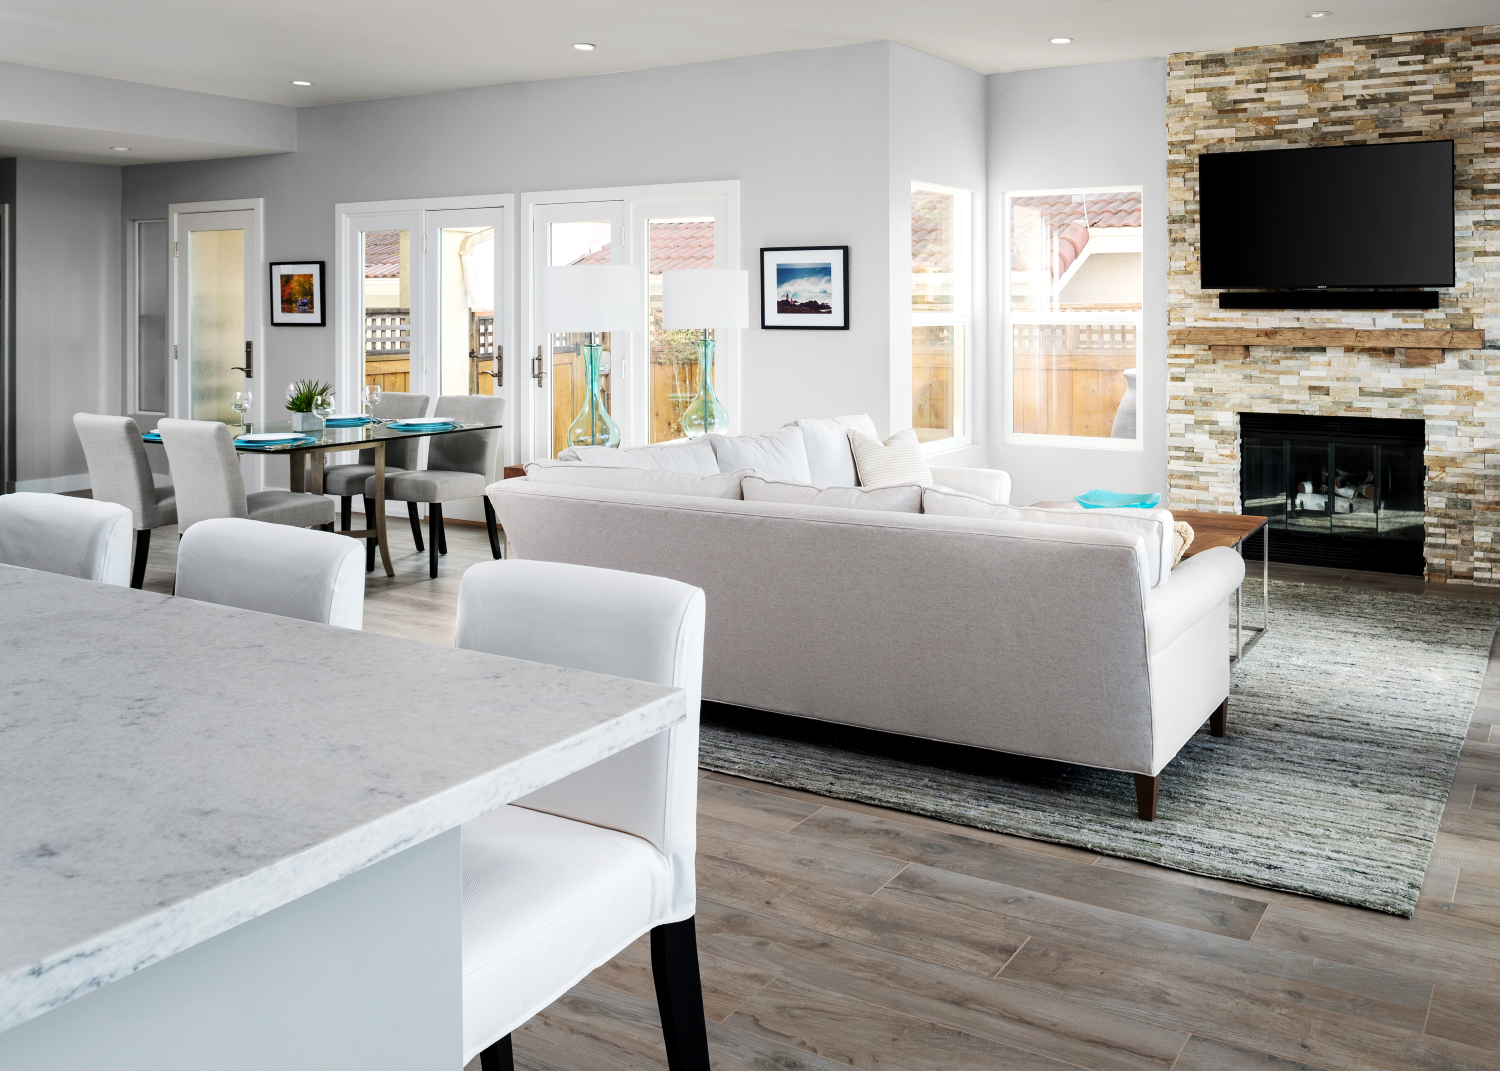 Great room, white, gray, blue – One Day Design